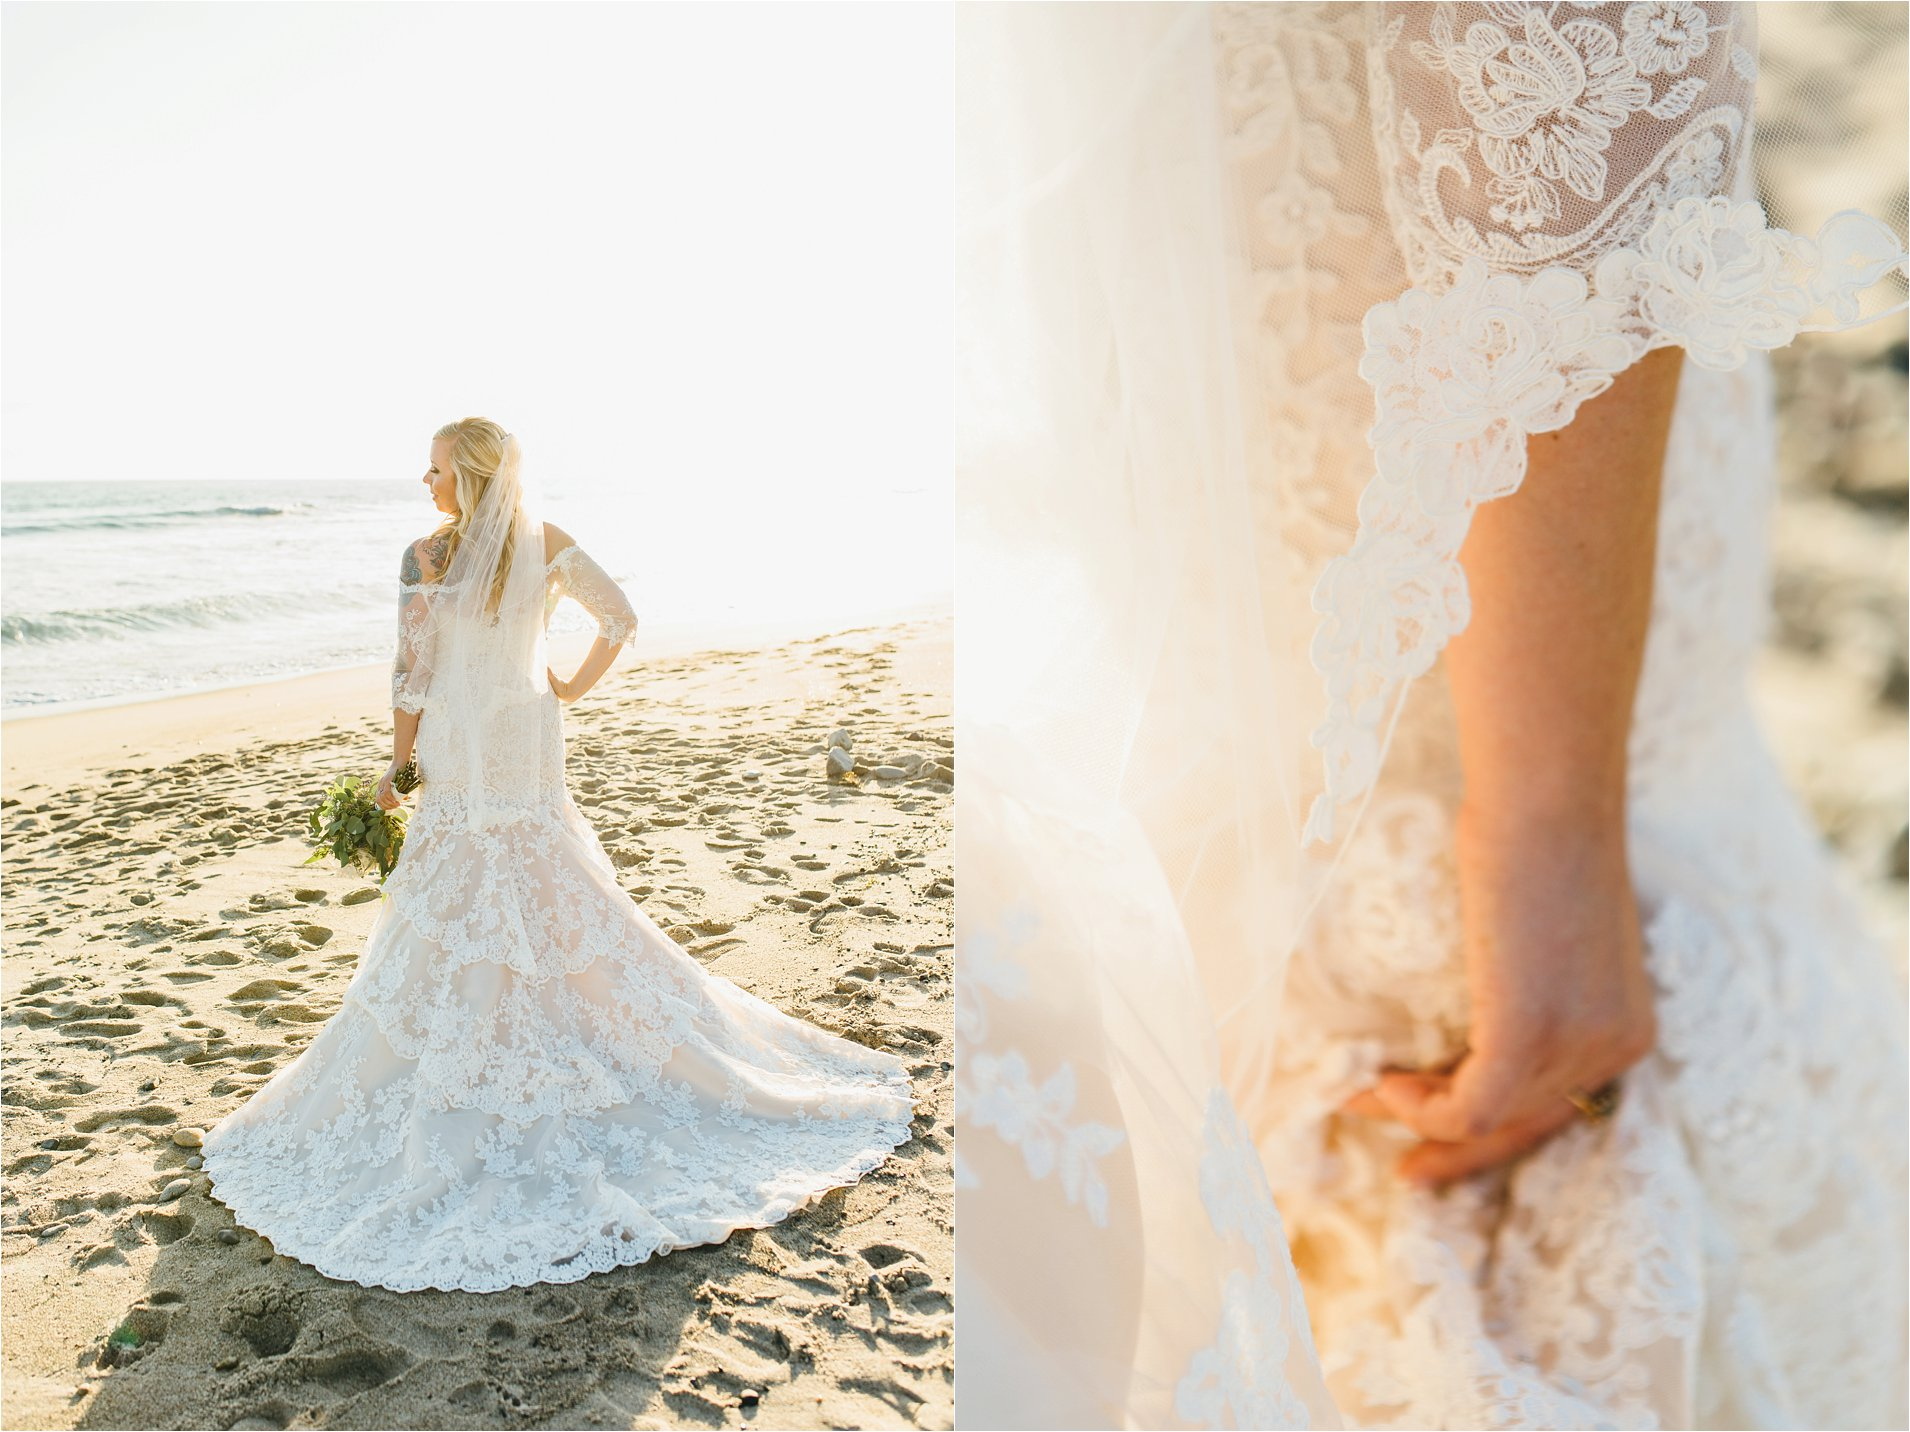 Lace Wedding Dress in Orange County